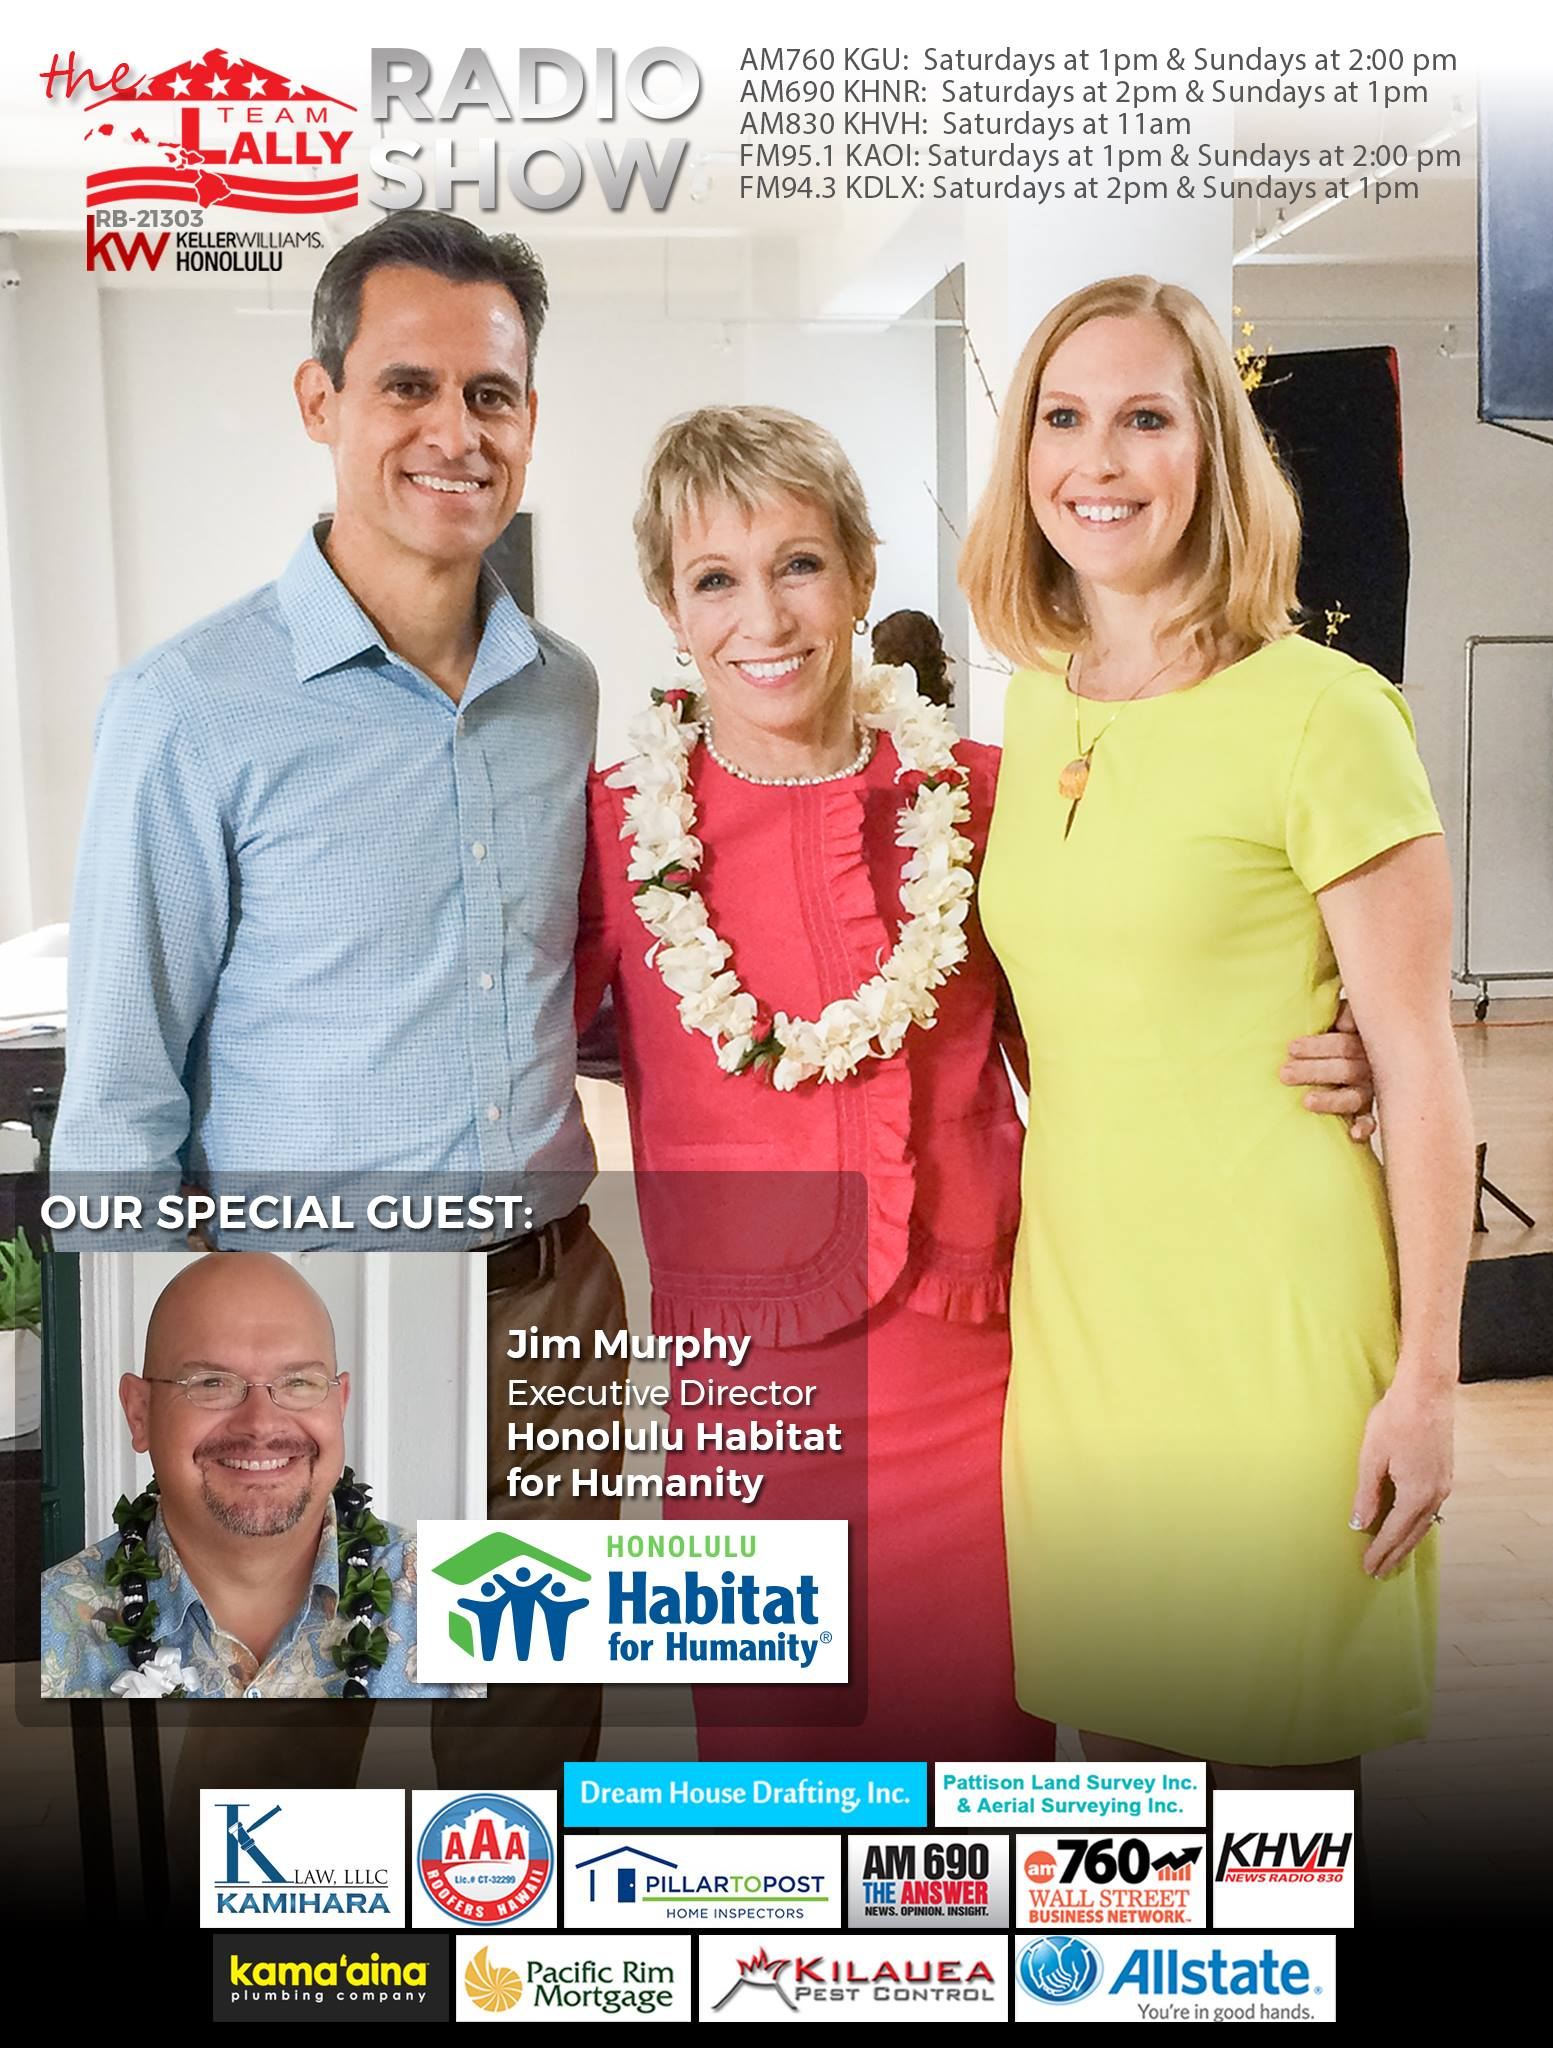 Bring homes to those in need with Honolulu Habitat for Humanity